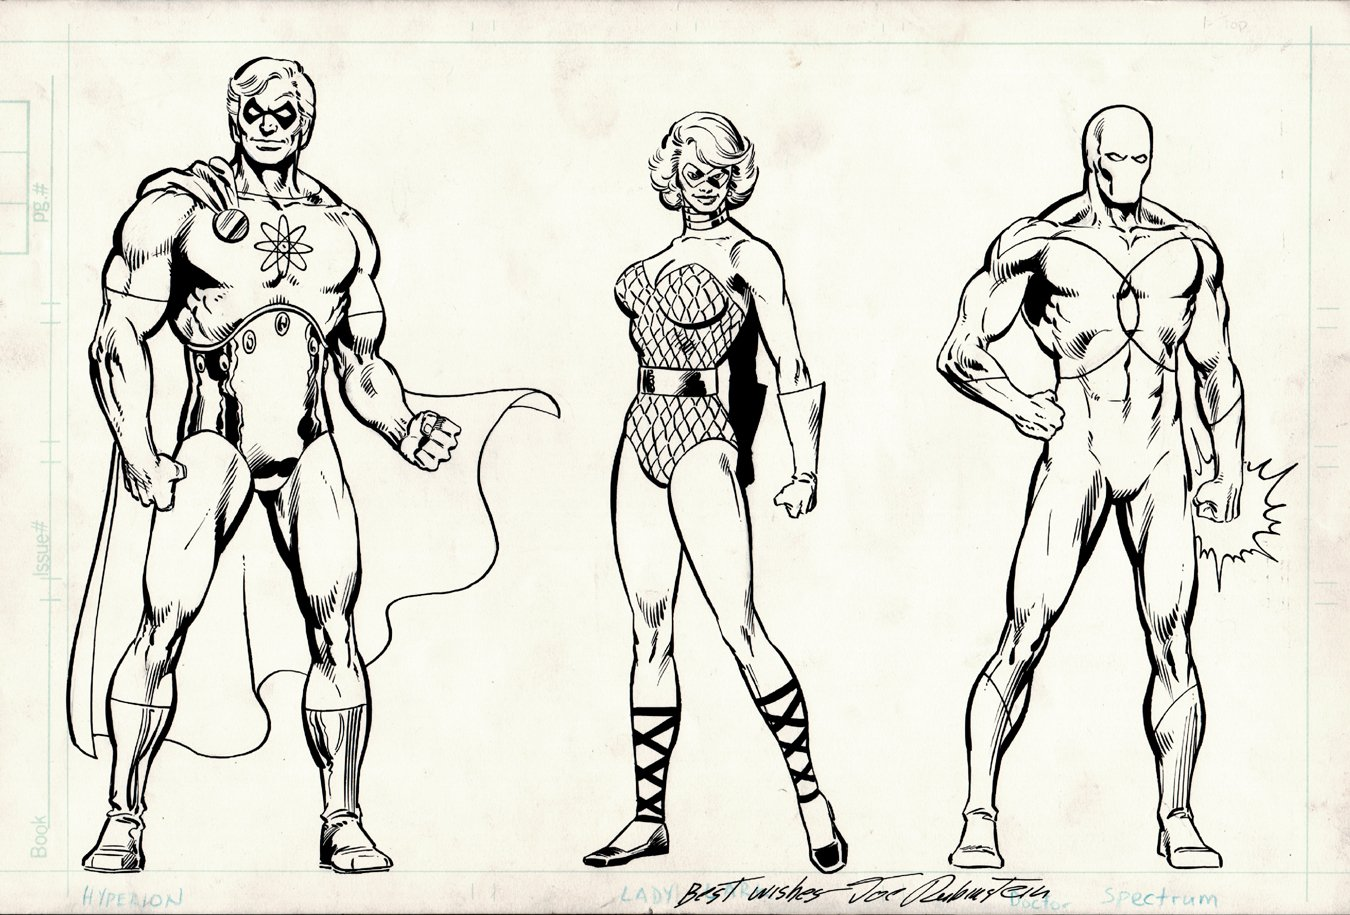 The Official Handbook of the Marvel Universe #10 'SQUADRON SUPREME PINUP' (Published 2 years BEFORE Their Mini-Series!) 1983